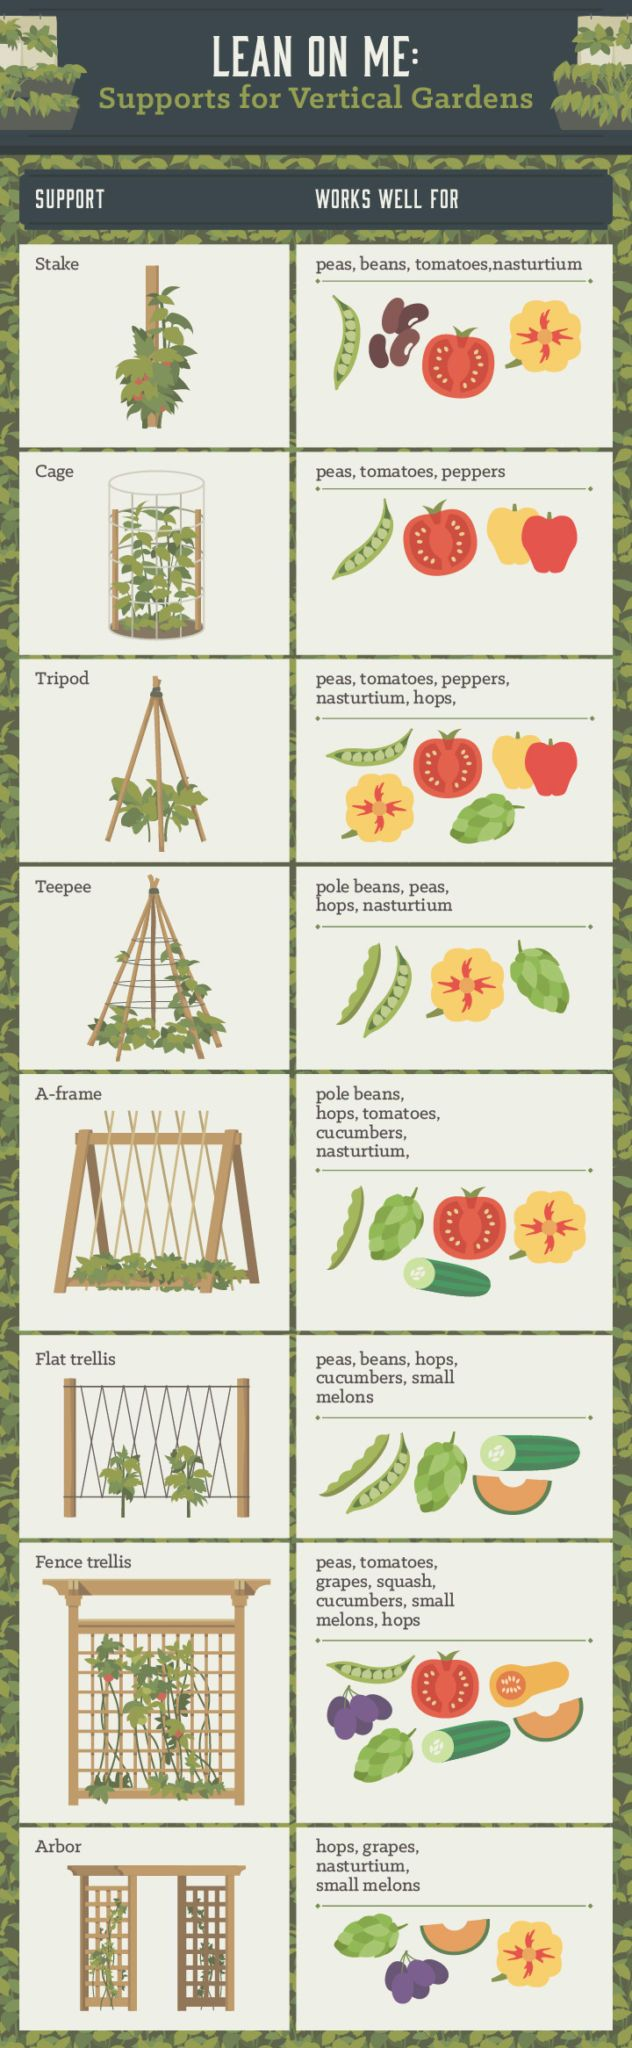 Trellis ideas for vertical gardening